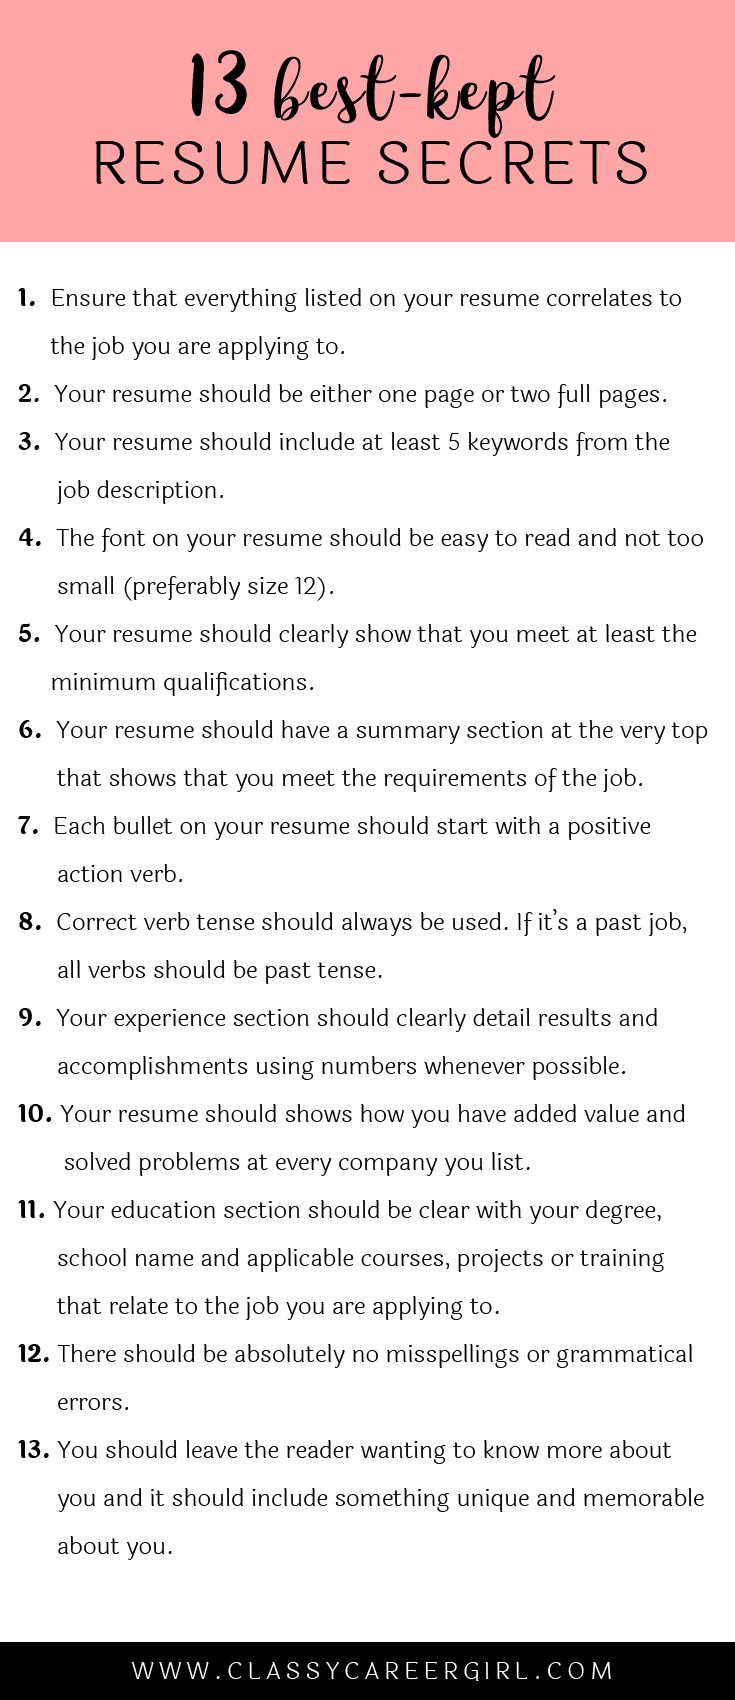 Opposenewapstandardsus  Marvelous  Ideas About Resume On Pinterest  Cv Format Resume Cv And  With Heavenly Some Hiring Managers Will Toss Your Resume Out If You Dont Know These  With Amusing Resume Temples Also Resume For Store Manager In Addition Science Resumes And What Is Functional Resume As Well As Latest Resume Trends Additionally Unc Optimal Resume From Pinterestcom With Opposenewapstandardsus  Heavenly  Ideas About Resume On Pinterest  Cv Format Resume Cv And  With Amusing Some Hiring Managers Will Toss Your Resume Out If You Dont Know These  And Marvelous Resume Temples Also Resume For Store Manager In Addition Science Resumes From Pinterestcom